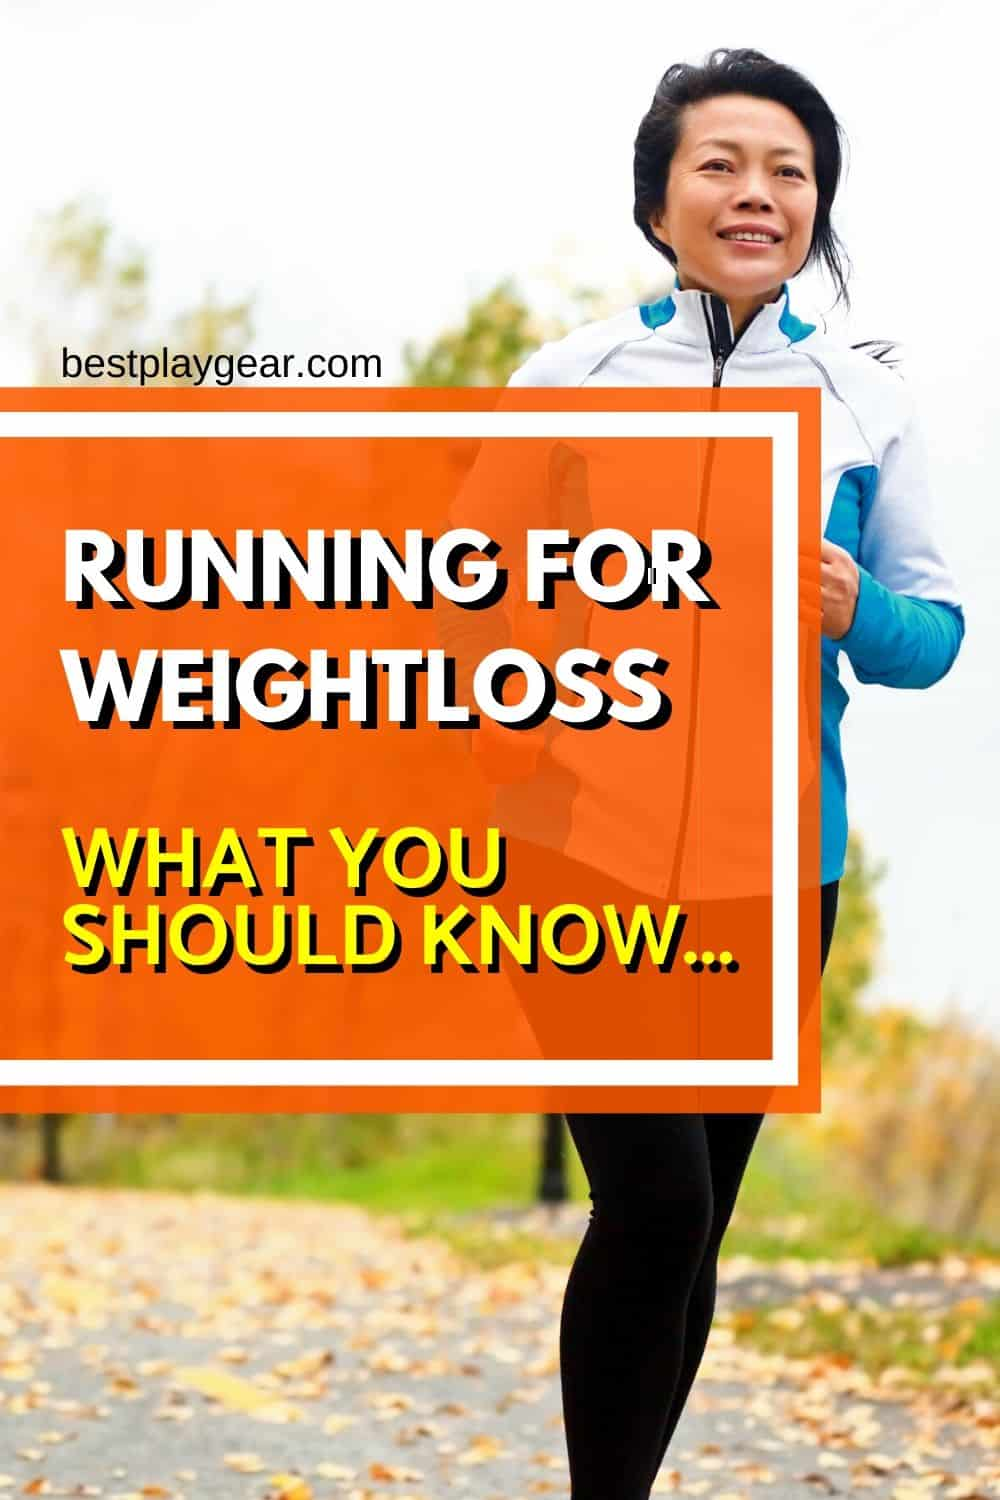 Running for weight loss is complicated...You don't know how much to run, how much is too much and what else you should do for weight loss through running. In this post we have answered all the typical question related to running for weight loss and have shared couple of weight loss plans.